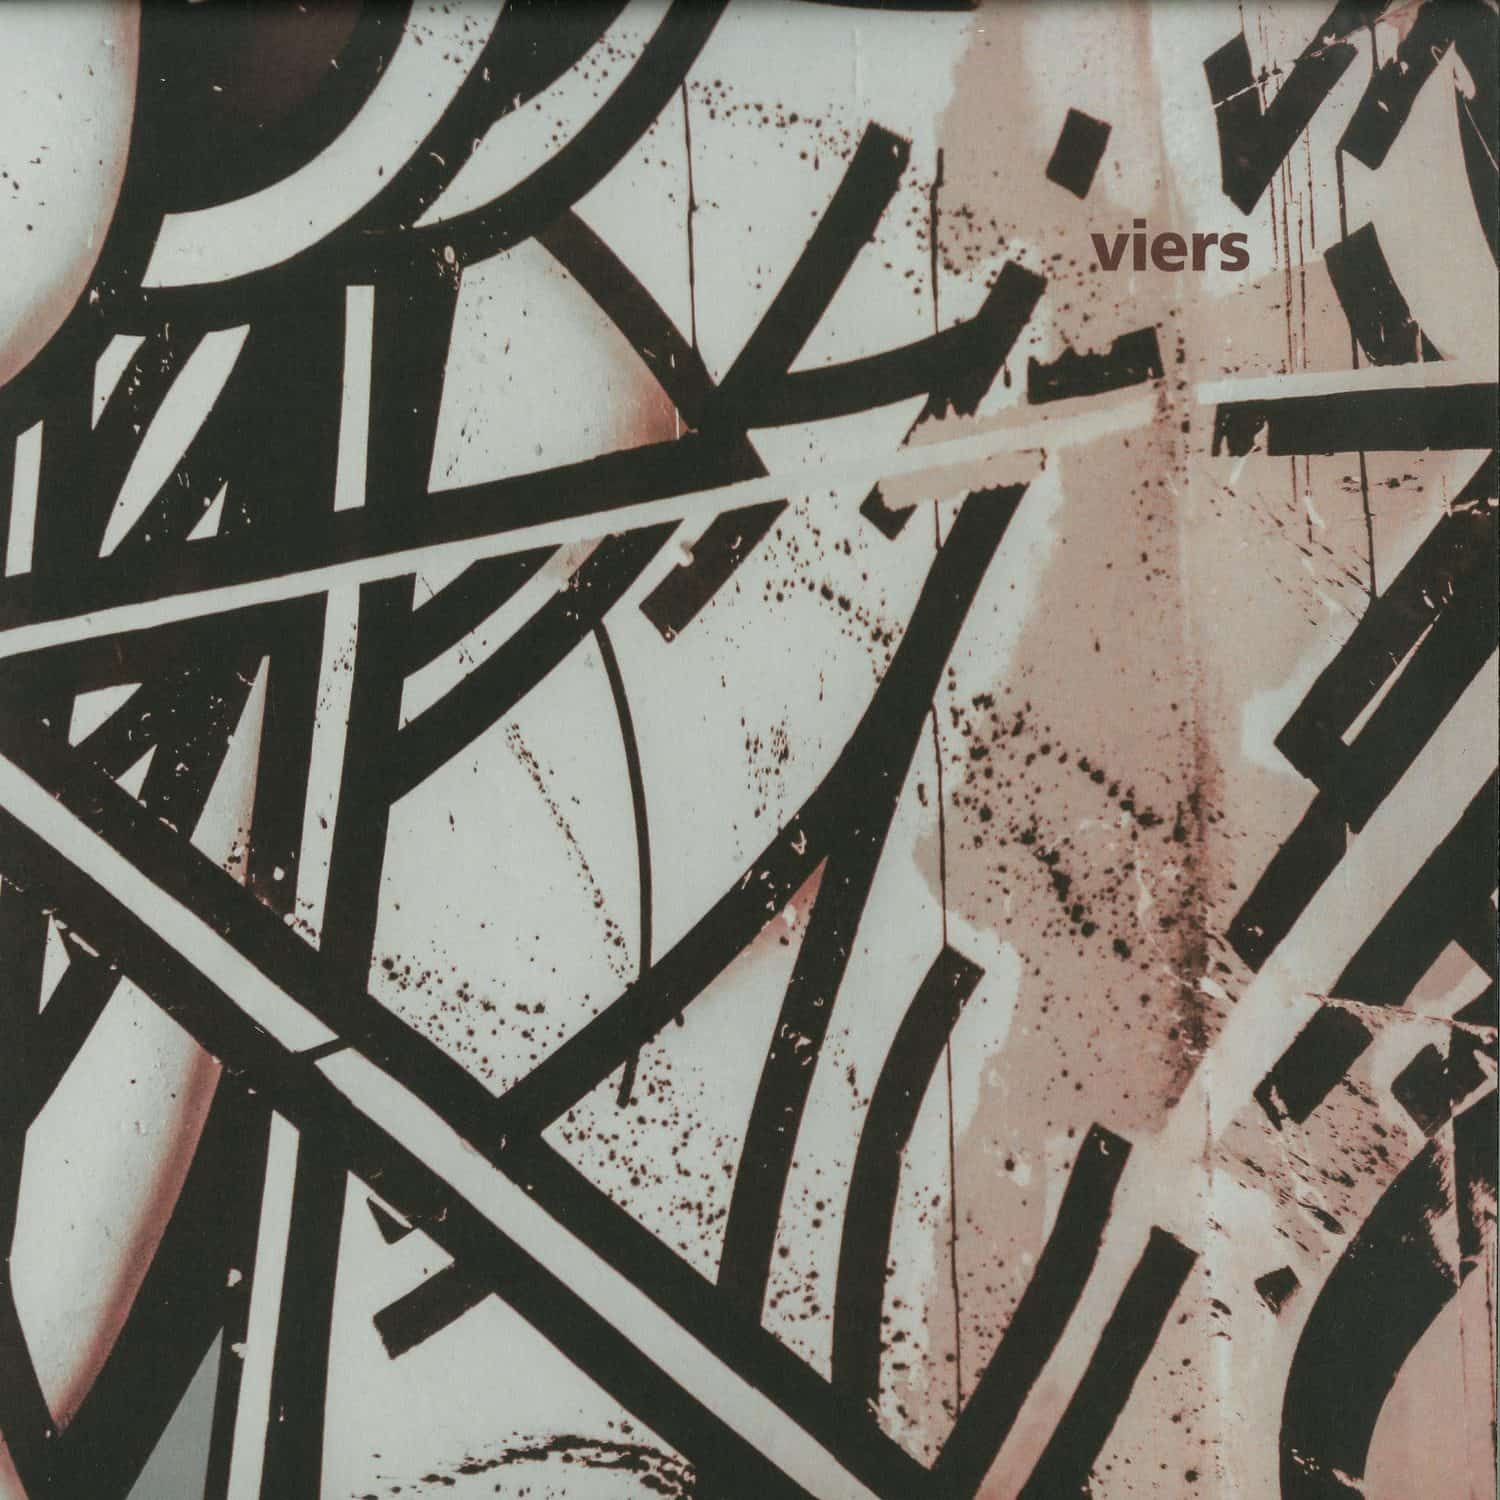 Viers - NOTHING CHANGED